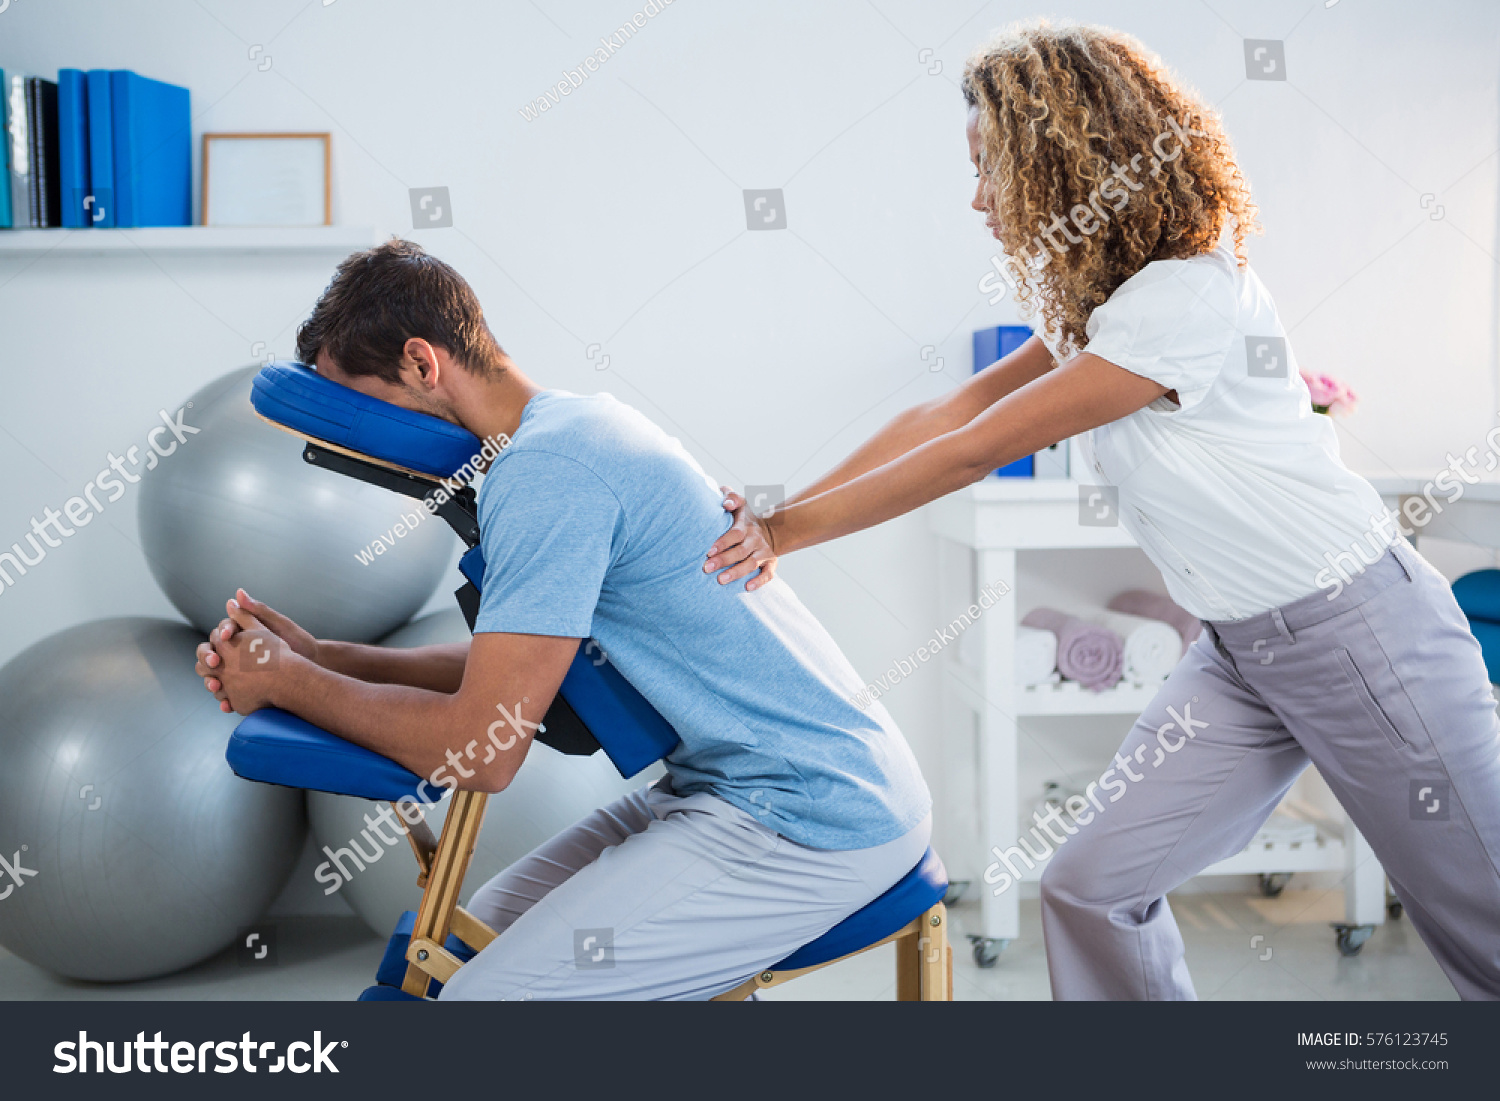 how to become a physiotherapist after 12th